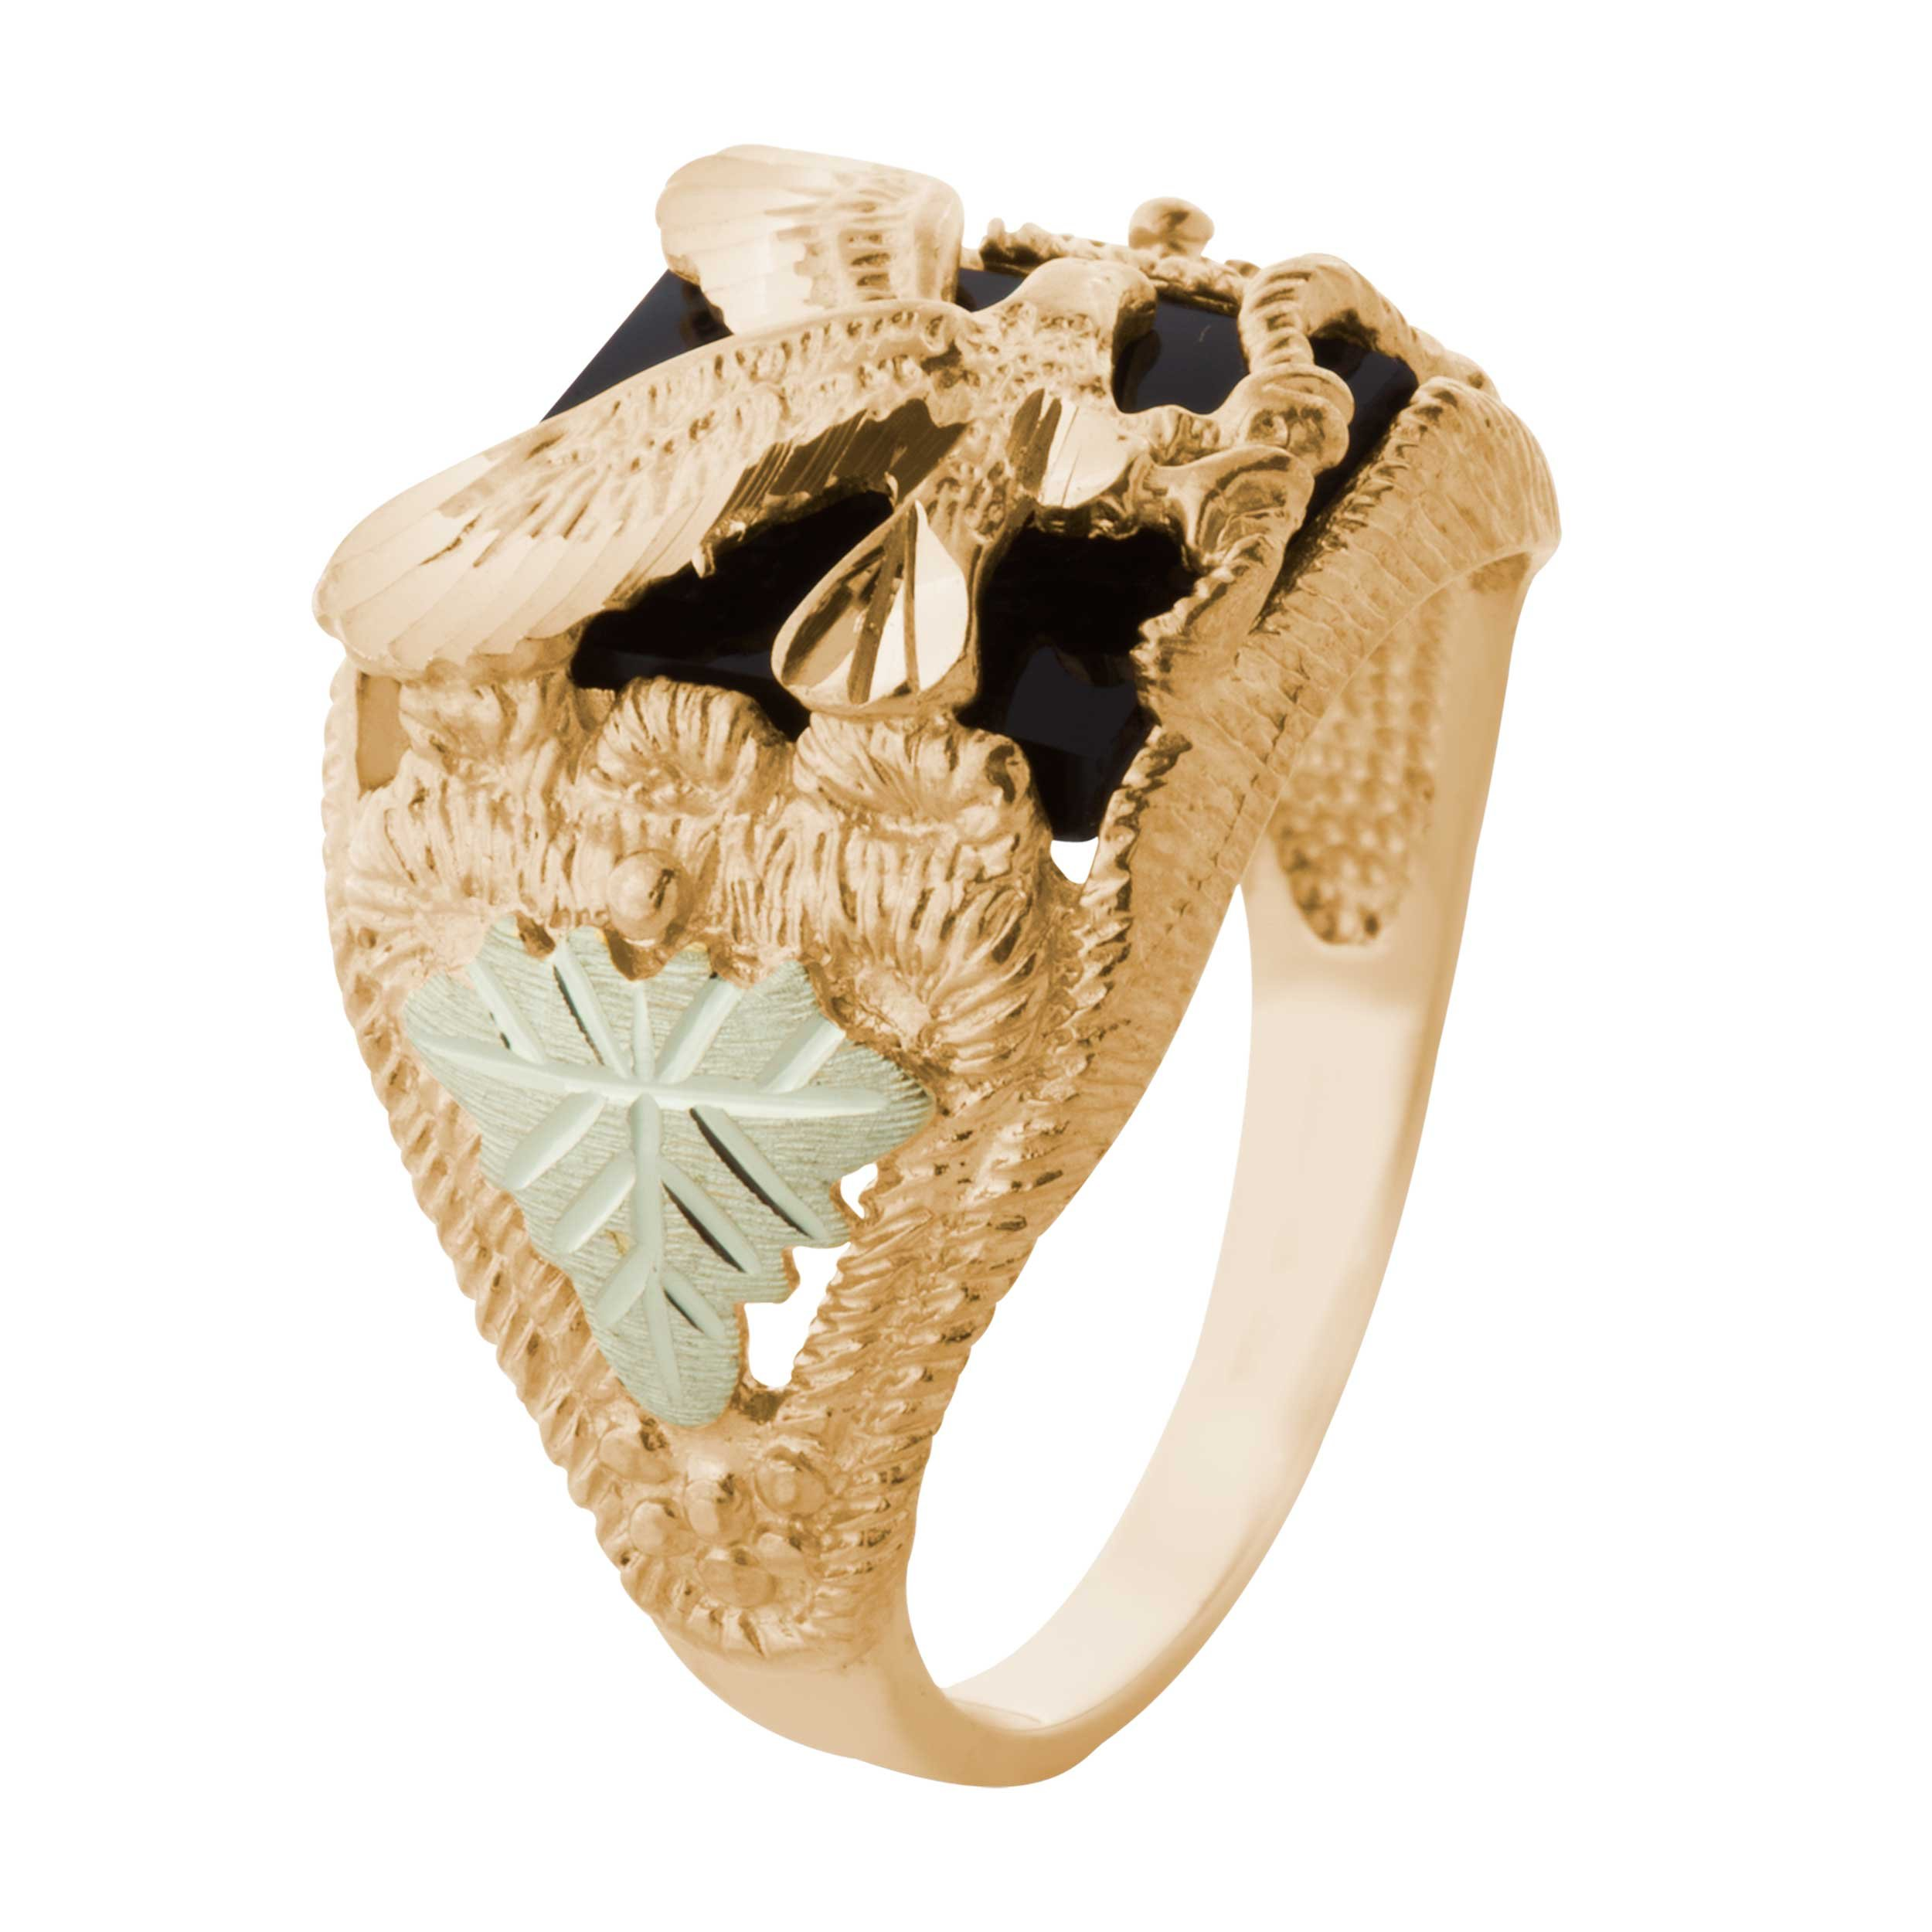 Men's Onyx Eagle Ring, 10k Yellow Gold, 12k Pink and Green Gold Black Hills Gold Motif, Size 14 by Black Hills Gold Jewelry (Image #2)